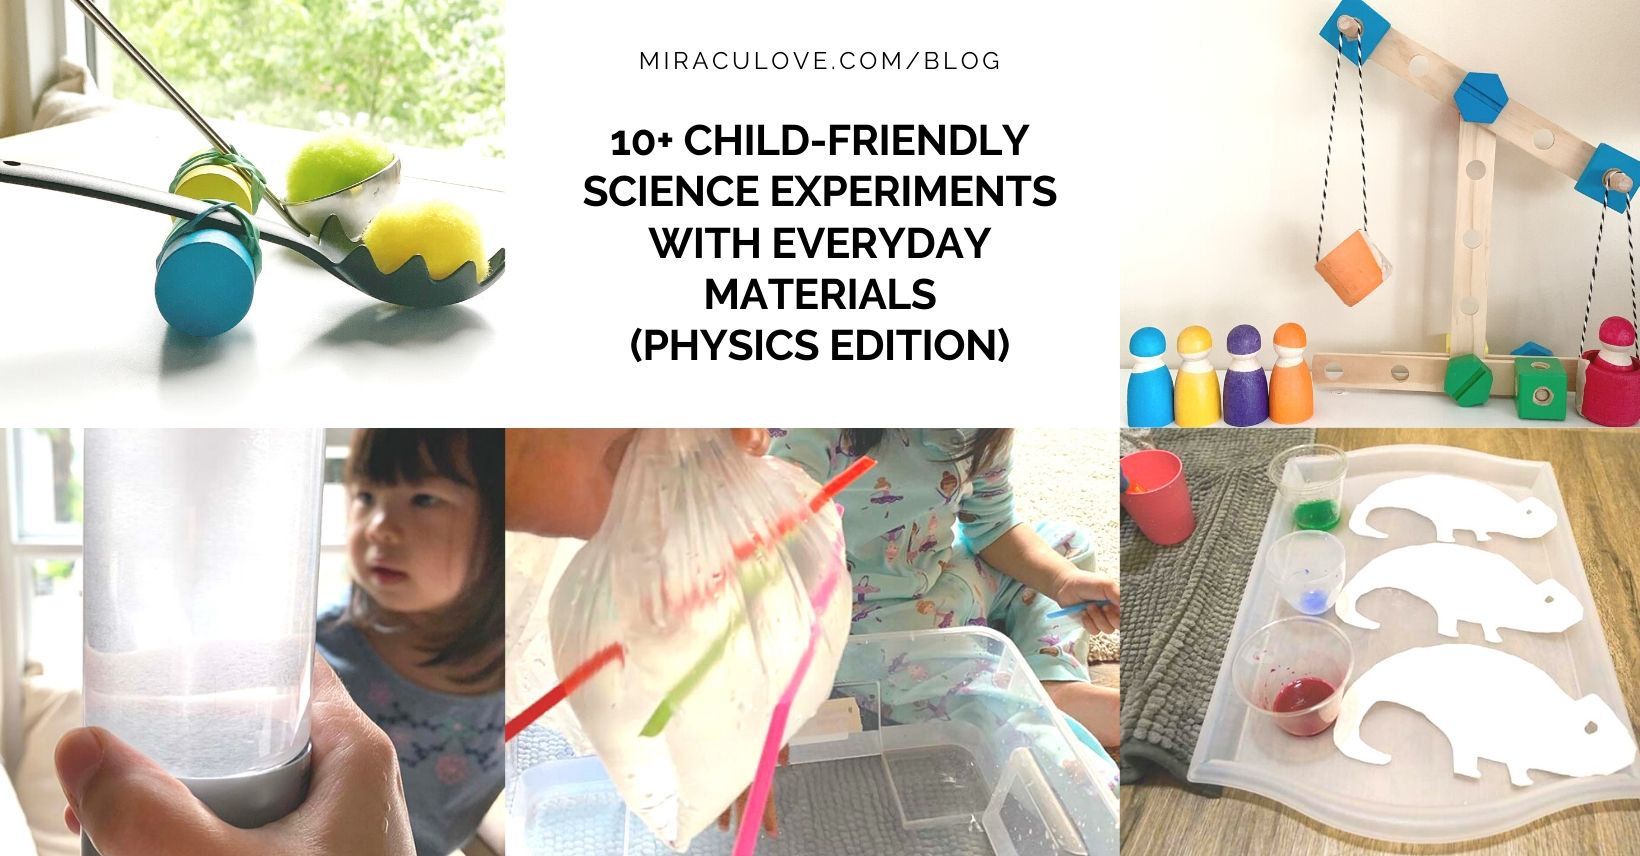 10+ Physics Home Experiments with Everyday Materials for Children